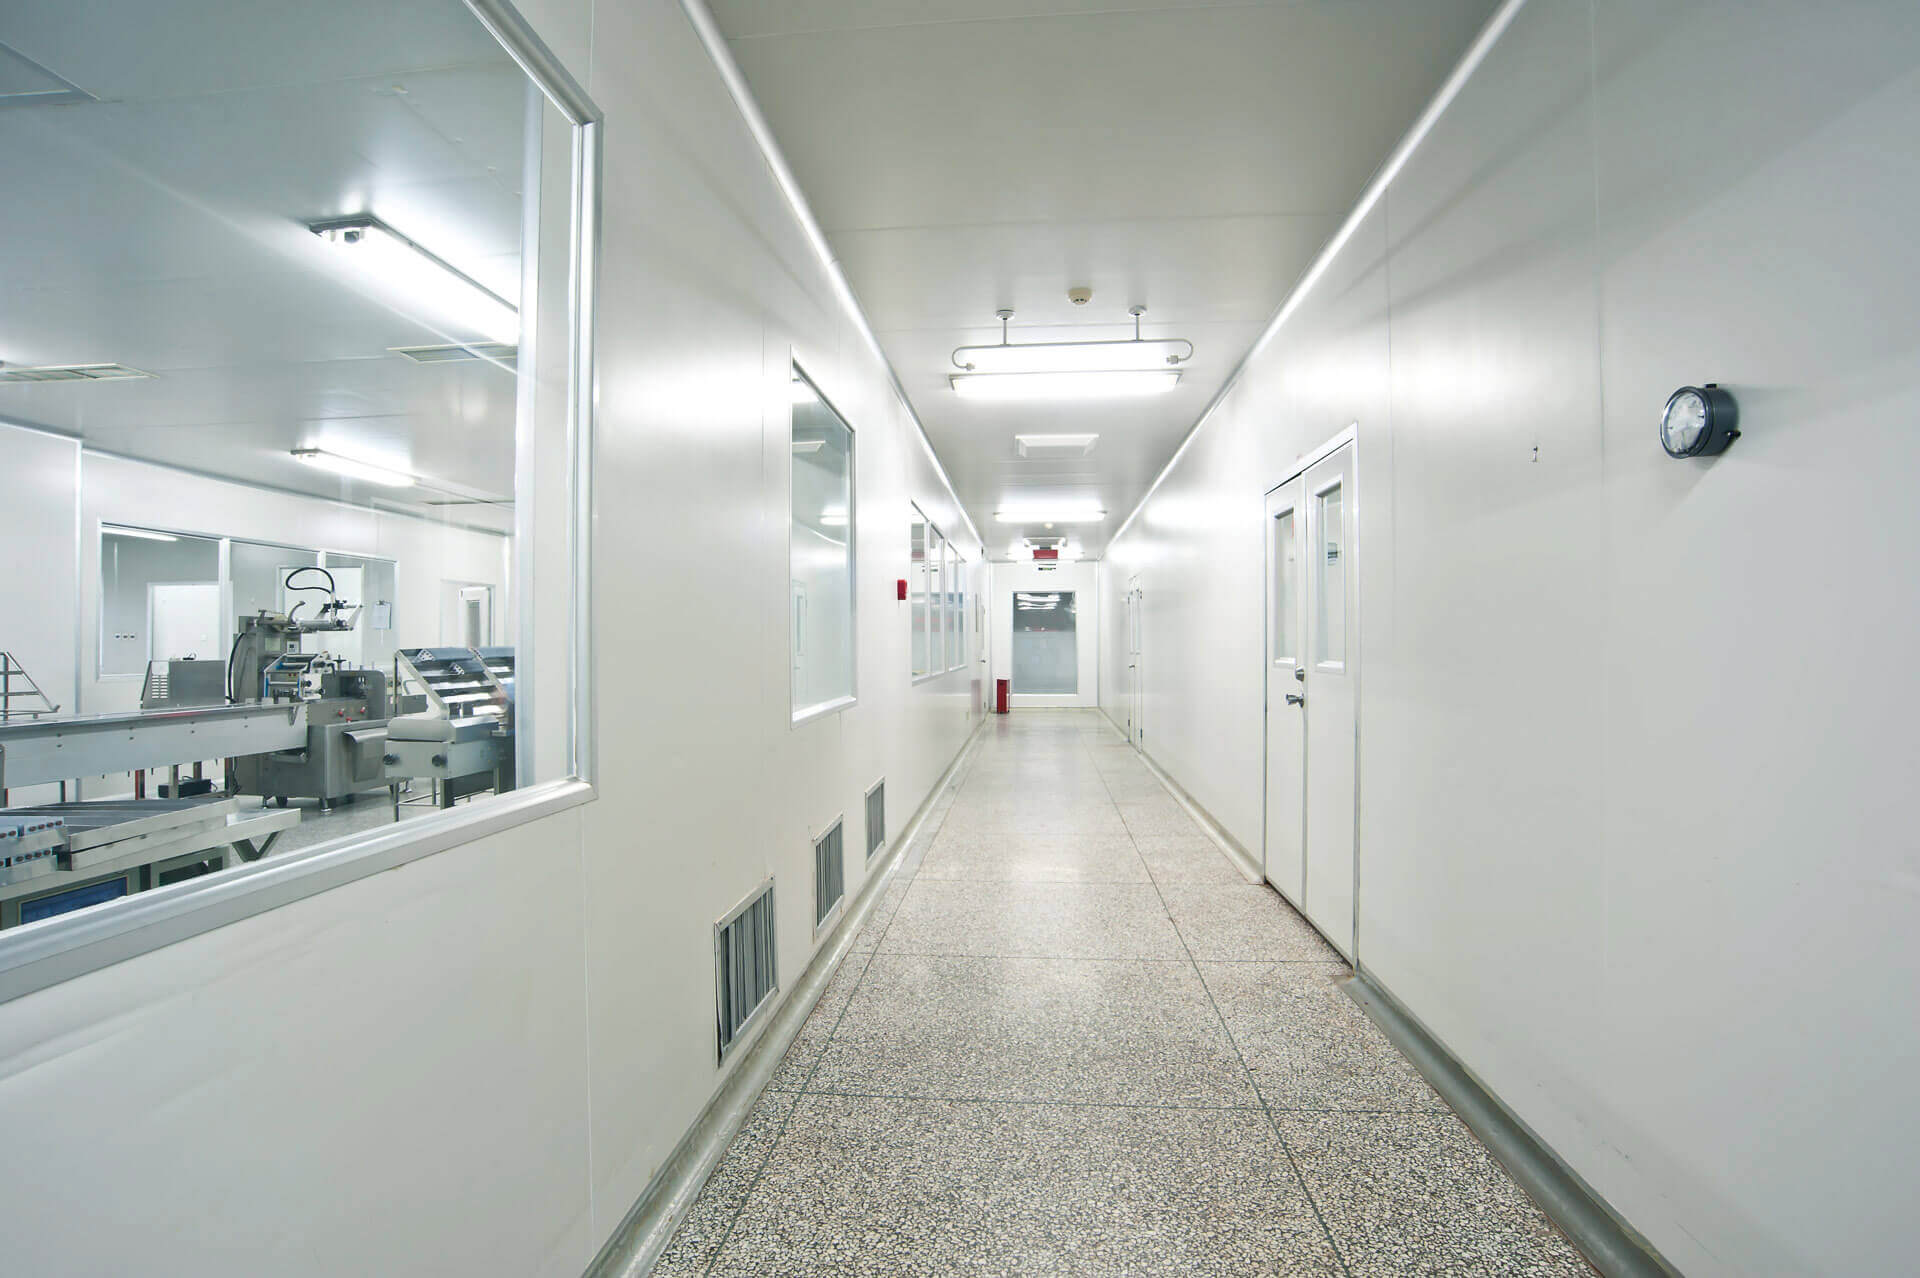 Corridor with viewing panels looking into pharmaceutical equipment in cleanroom.